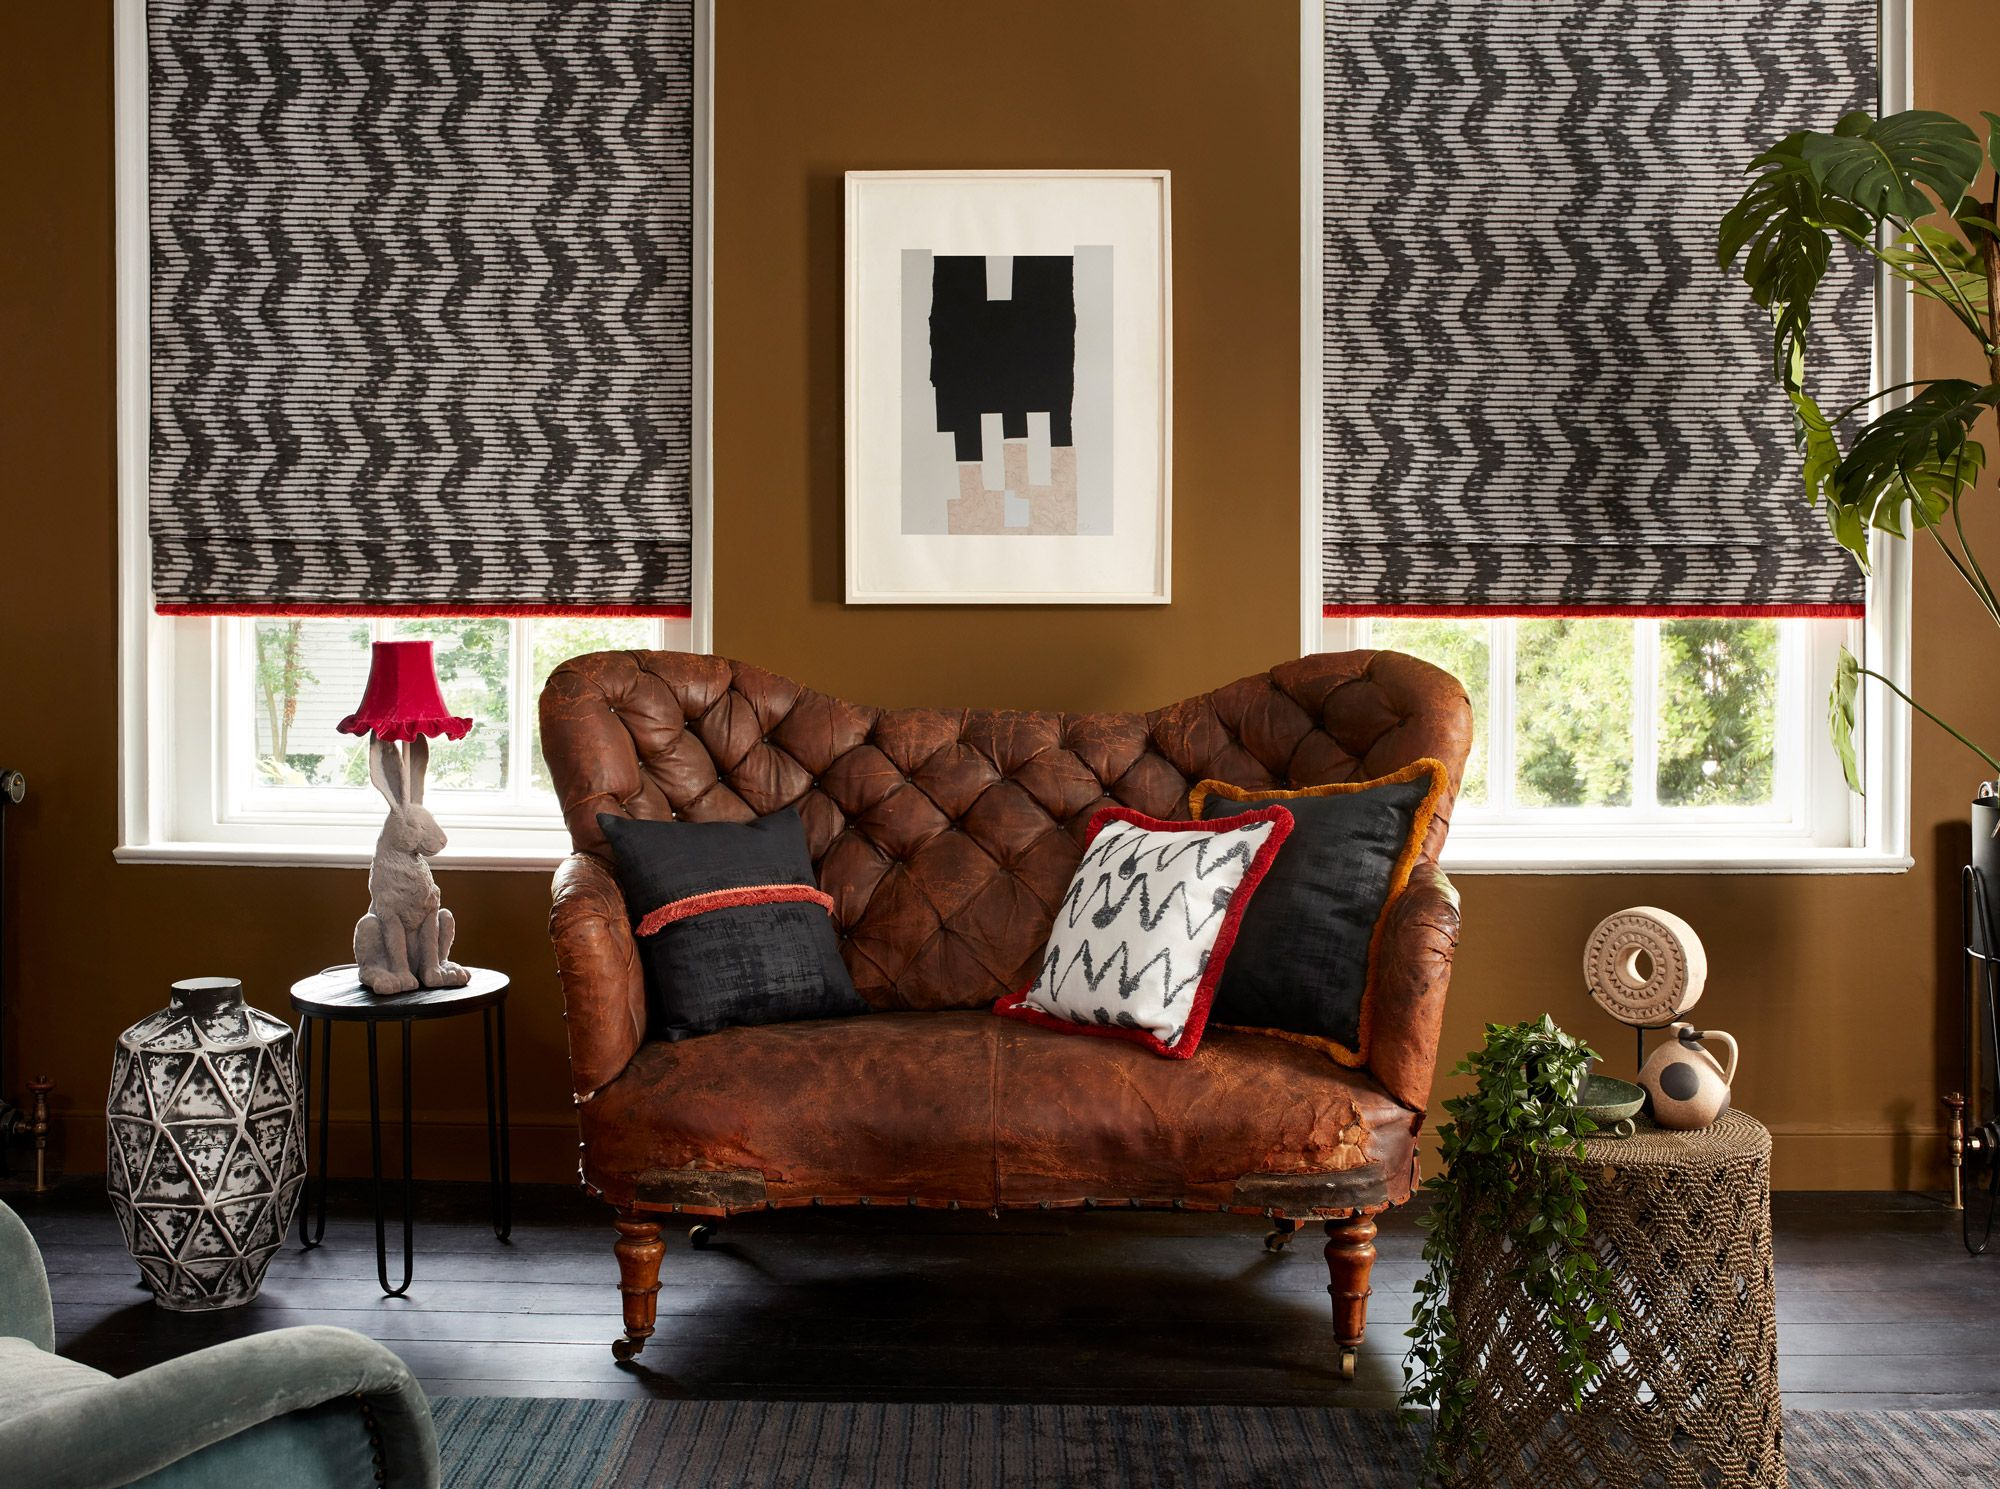 Hillarys Blinds Online >> Made to Measure Roman Blinds up to 50% Sale | Hillarys